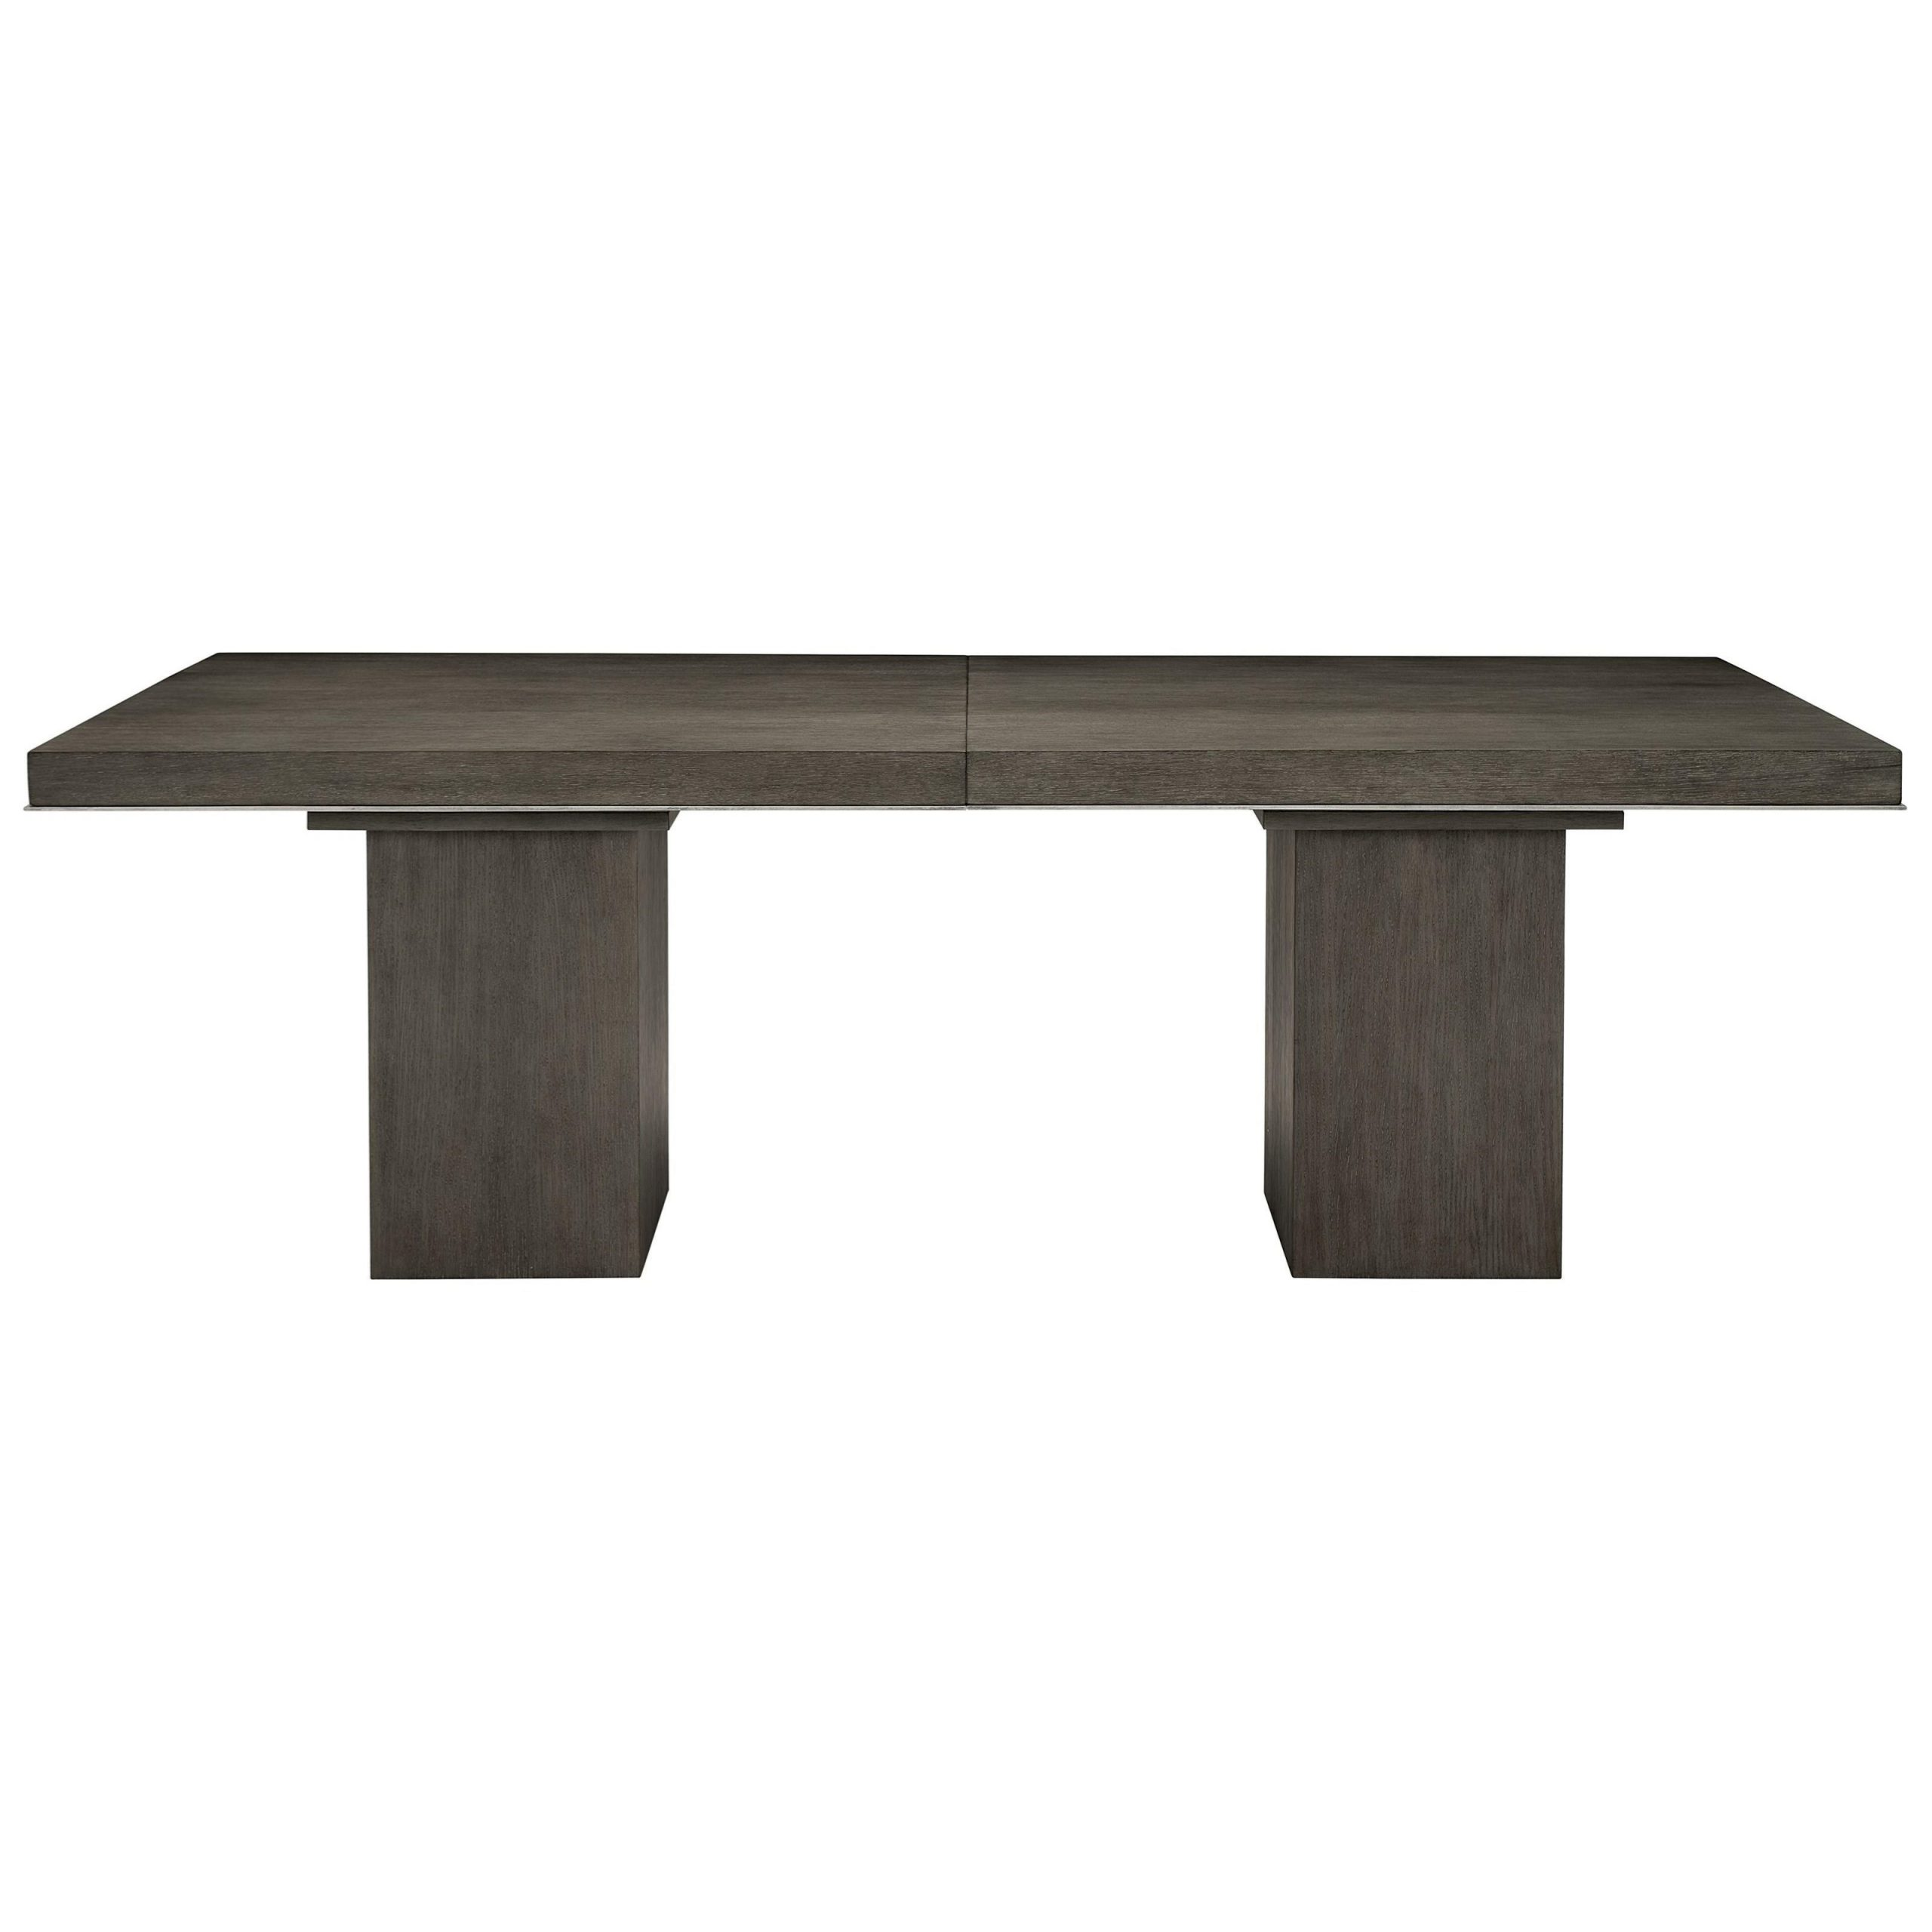 Bernhardt Linea Transitional Rectangular Dining Table With In 2017 Charcoal Transitional 6 Seating Rectangular Dining Tables (View 19 of 30)